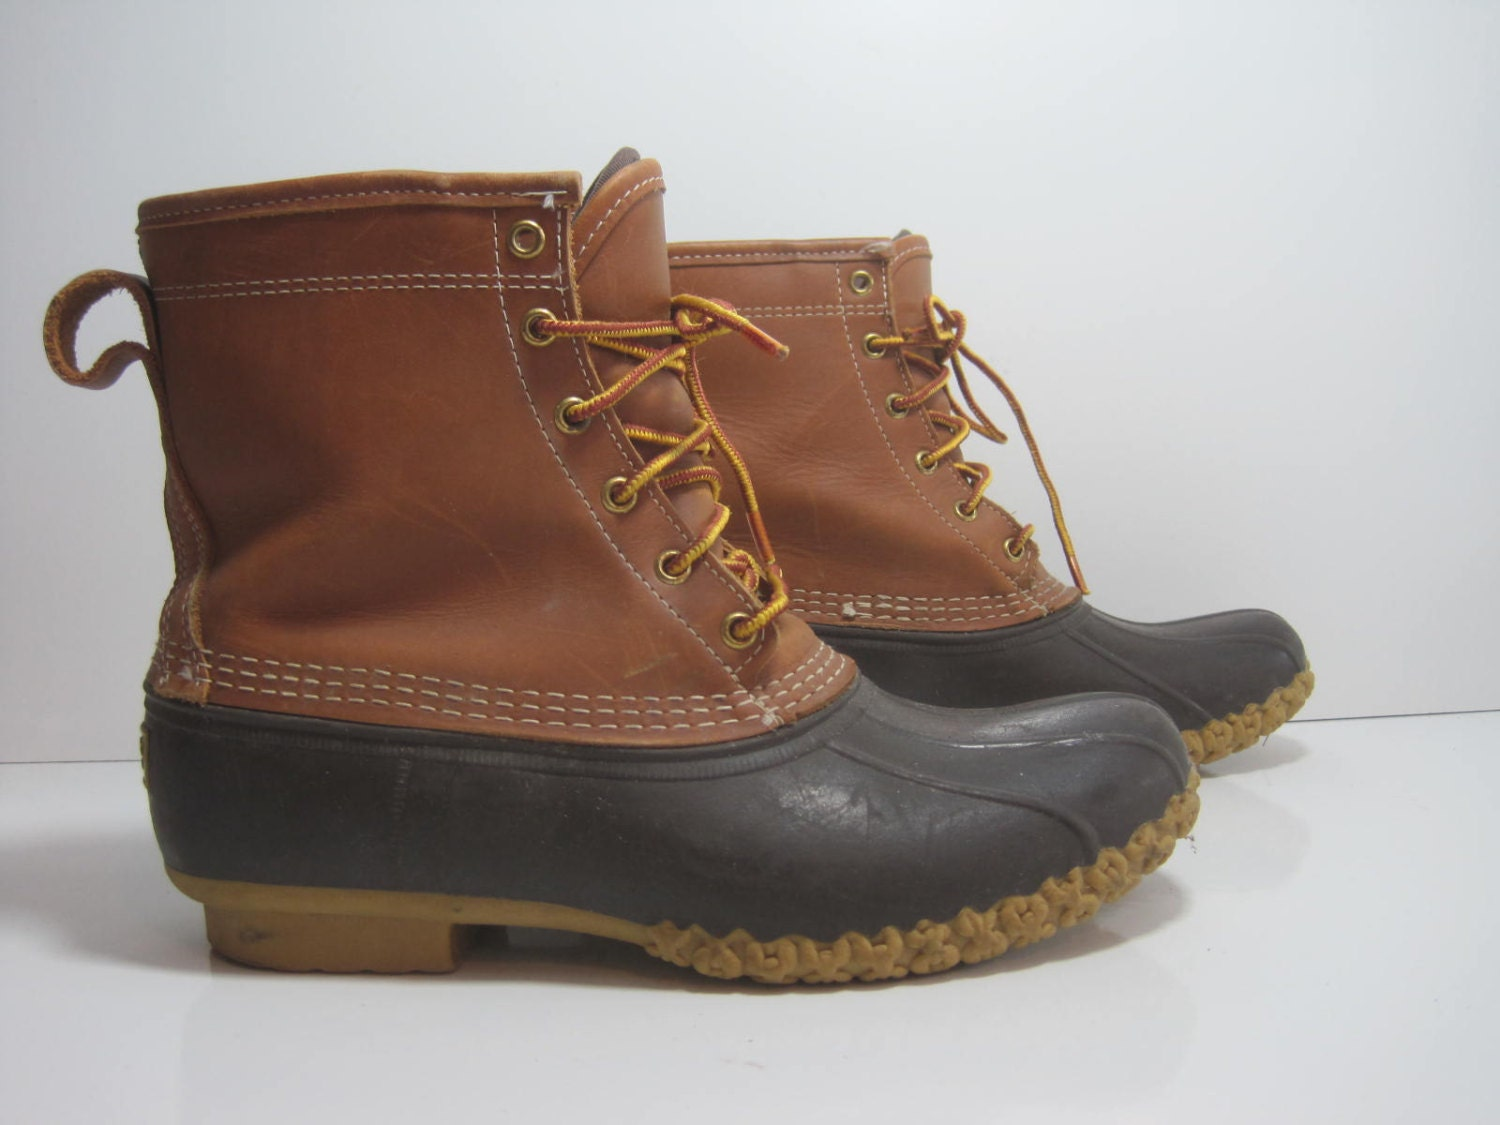 Bean Boots By L L Bean Duck Boots Thinsulate Shoes Size 9 M